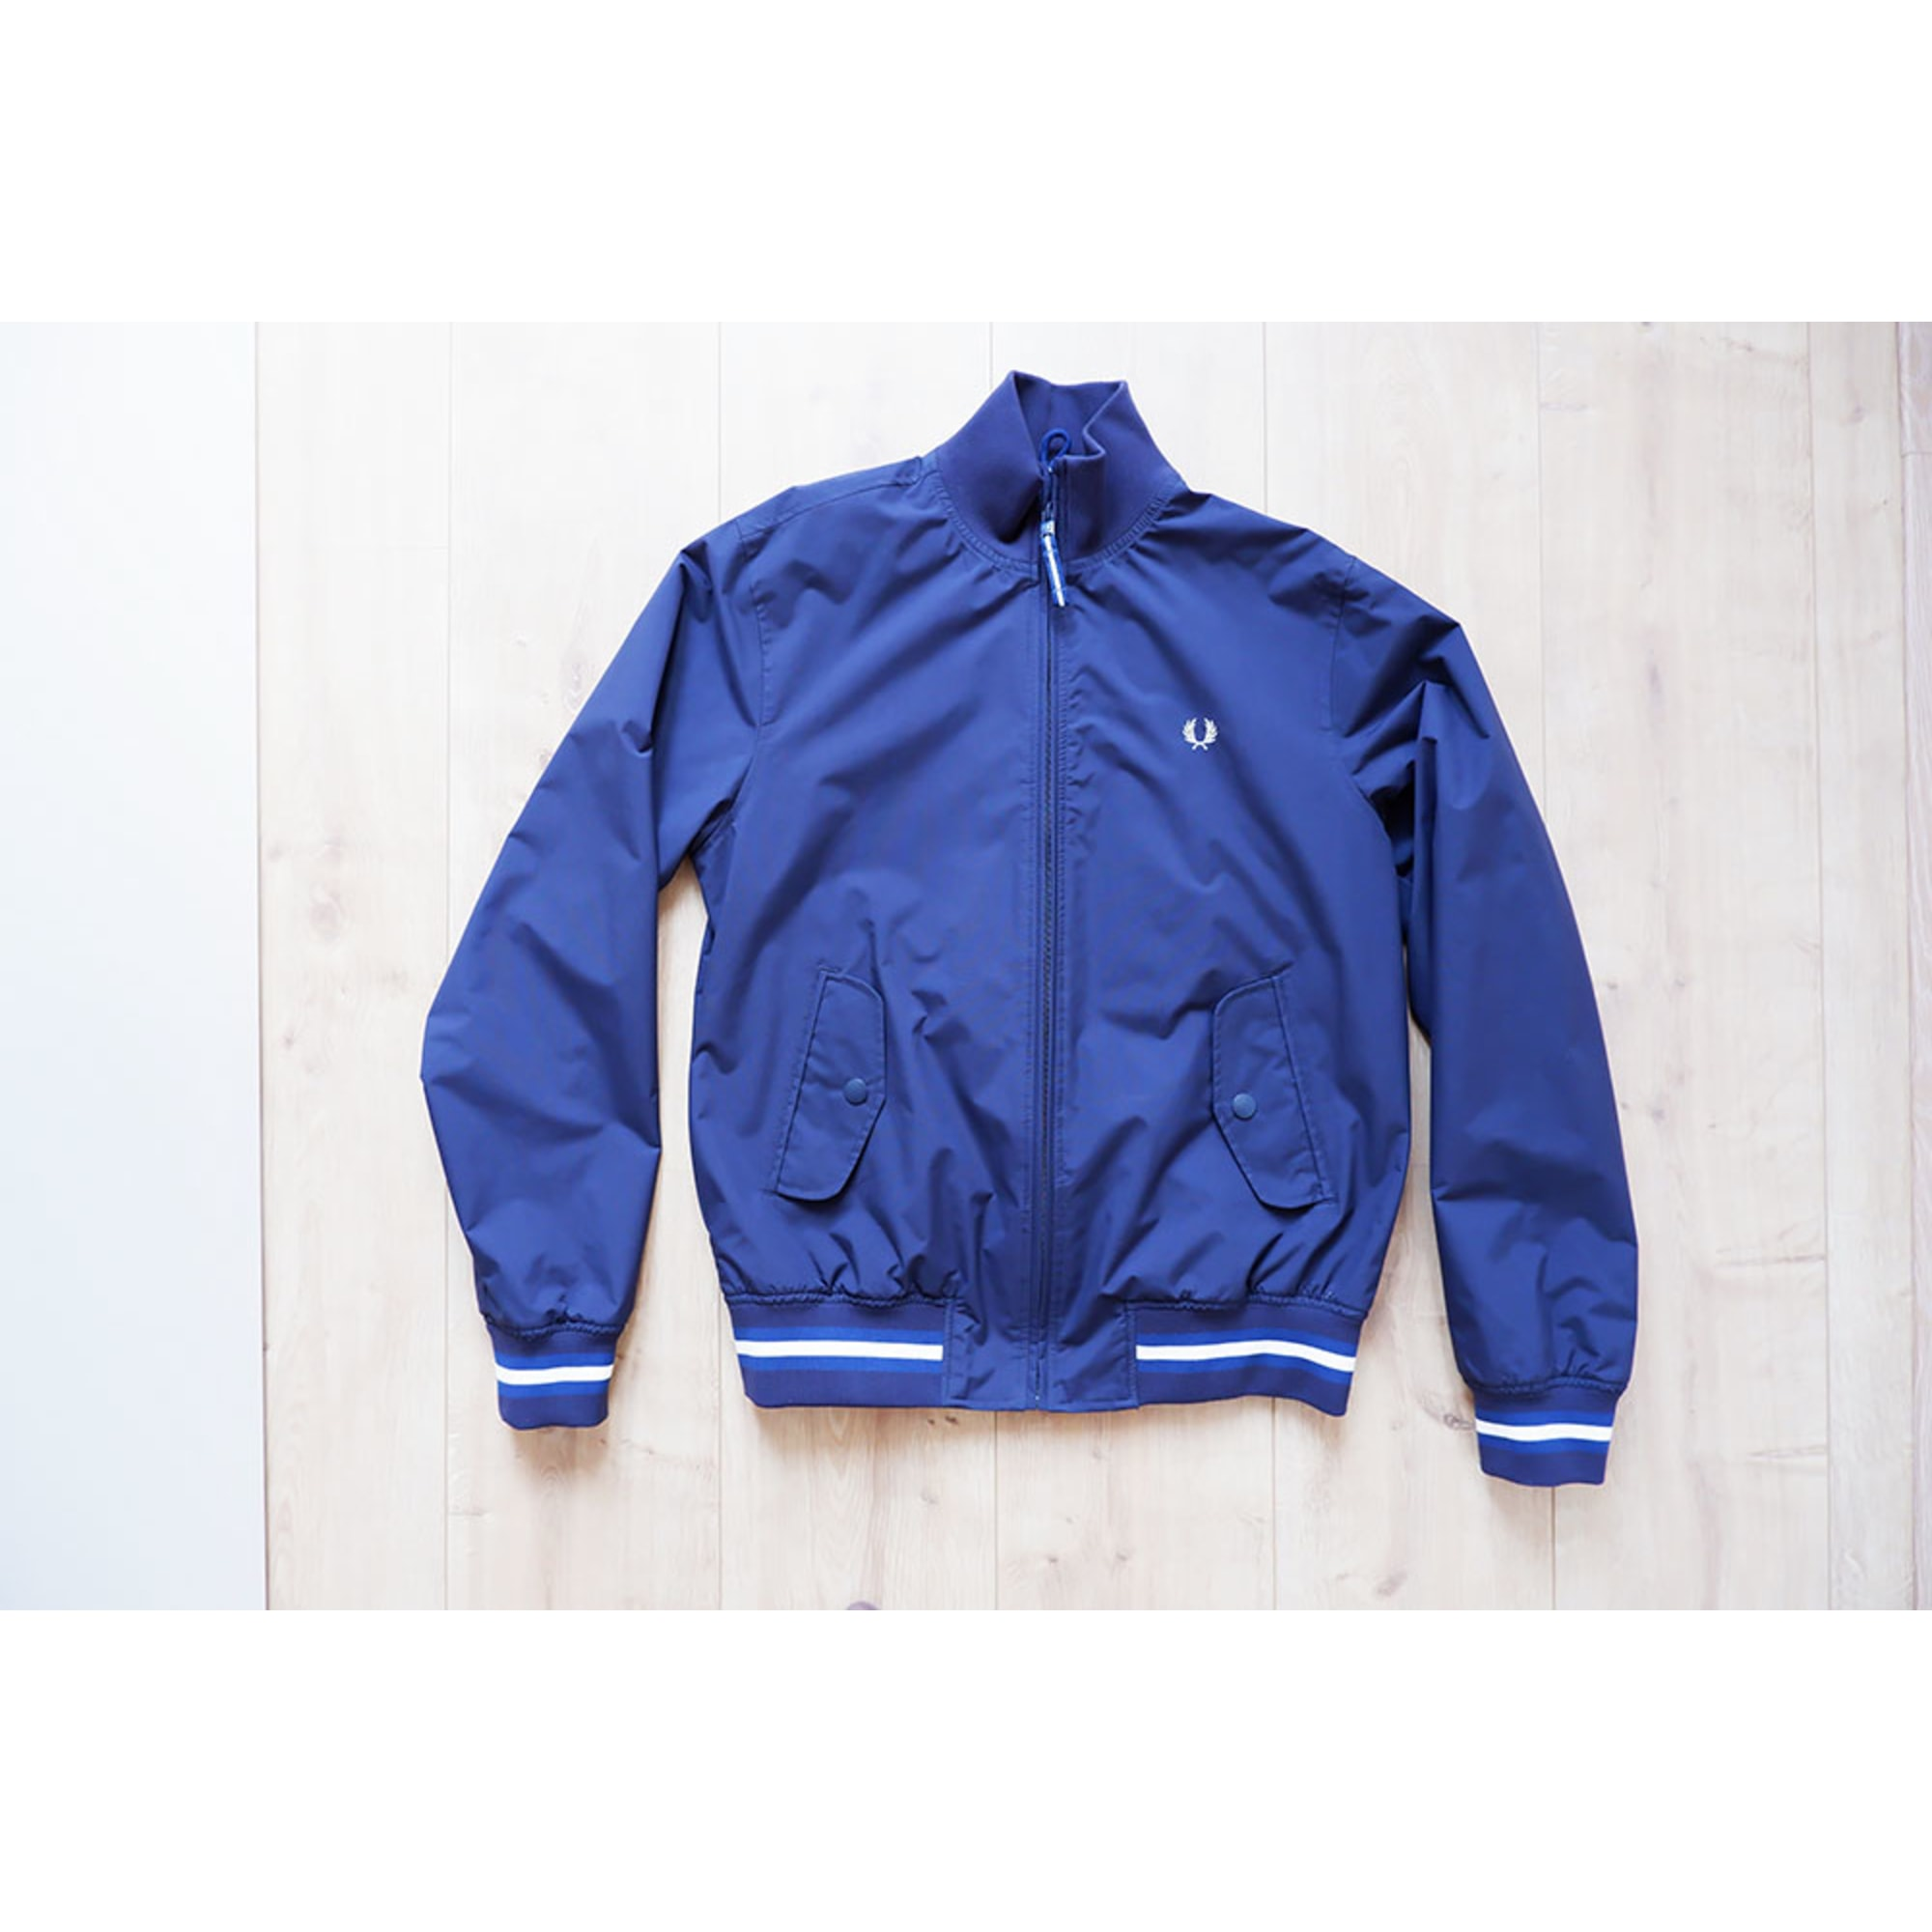 Zipped Jacket FRED PERRY Blue, navy, turquoise